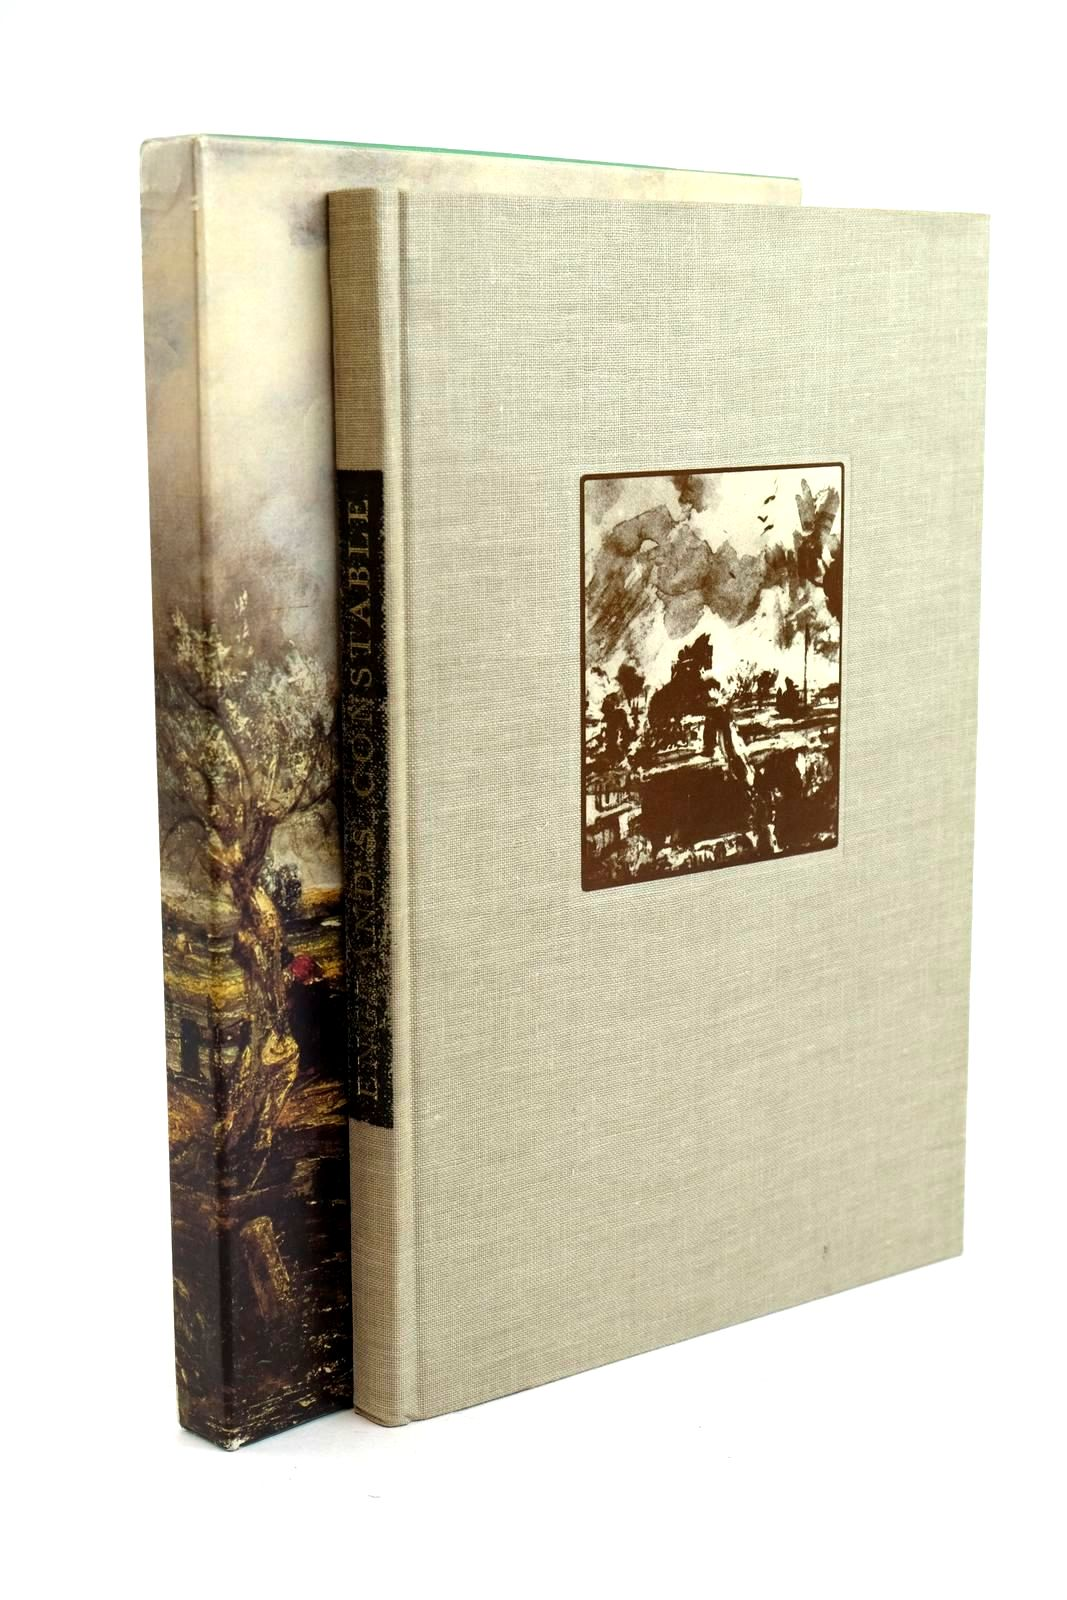 Photo of ENGLAND'S CONSTABLE written by Darracott, Joseph Constable, John illustrated by Constable, John published by Folio Society (STOCK CODE: 1320349)  for sale by Stella & Rose's Books